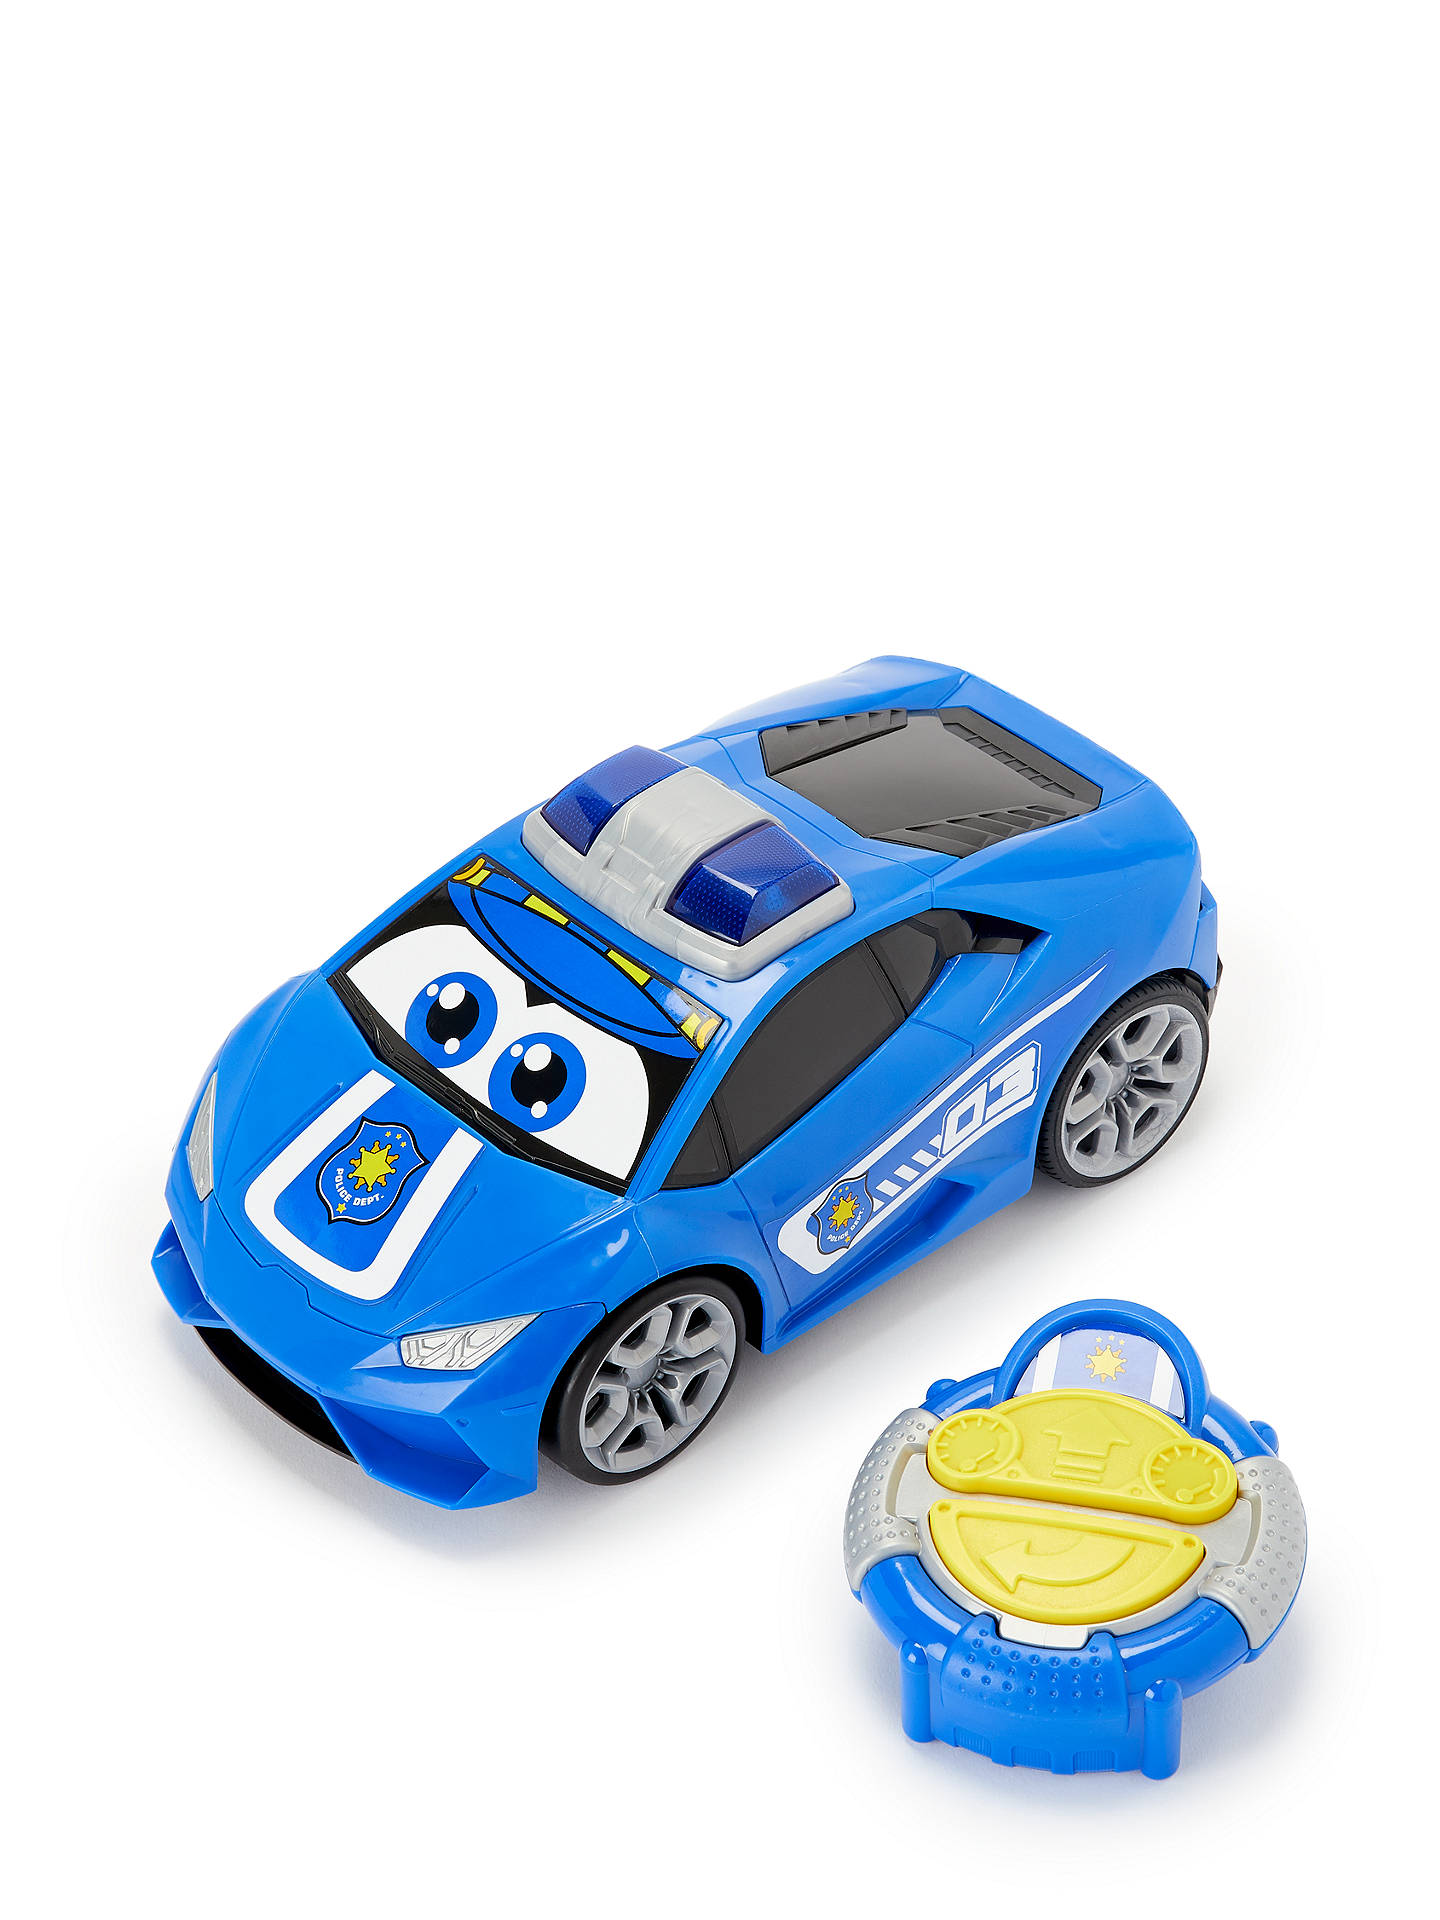 Buy John Lewis & Partners My First Remote Control Police Car Online at johnlewis.com